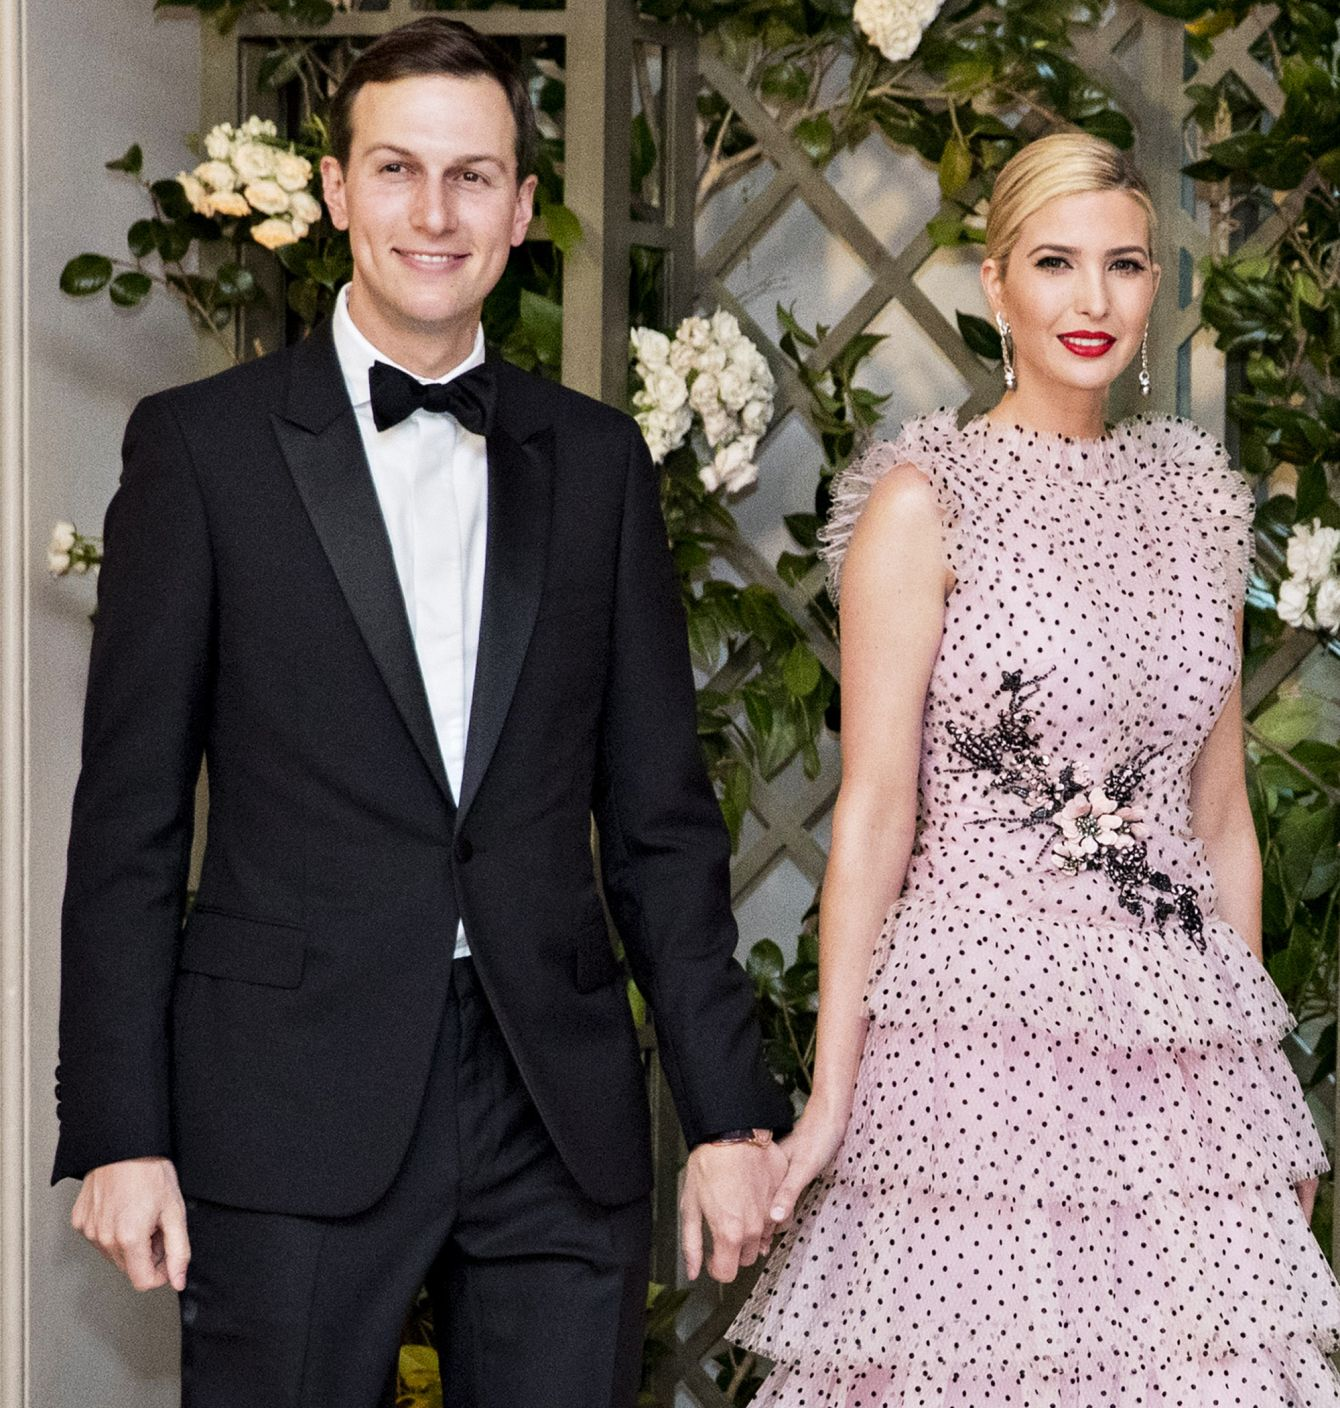 Jared Kushner's Remarks About His Relationship With Ivanka Trump